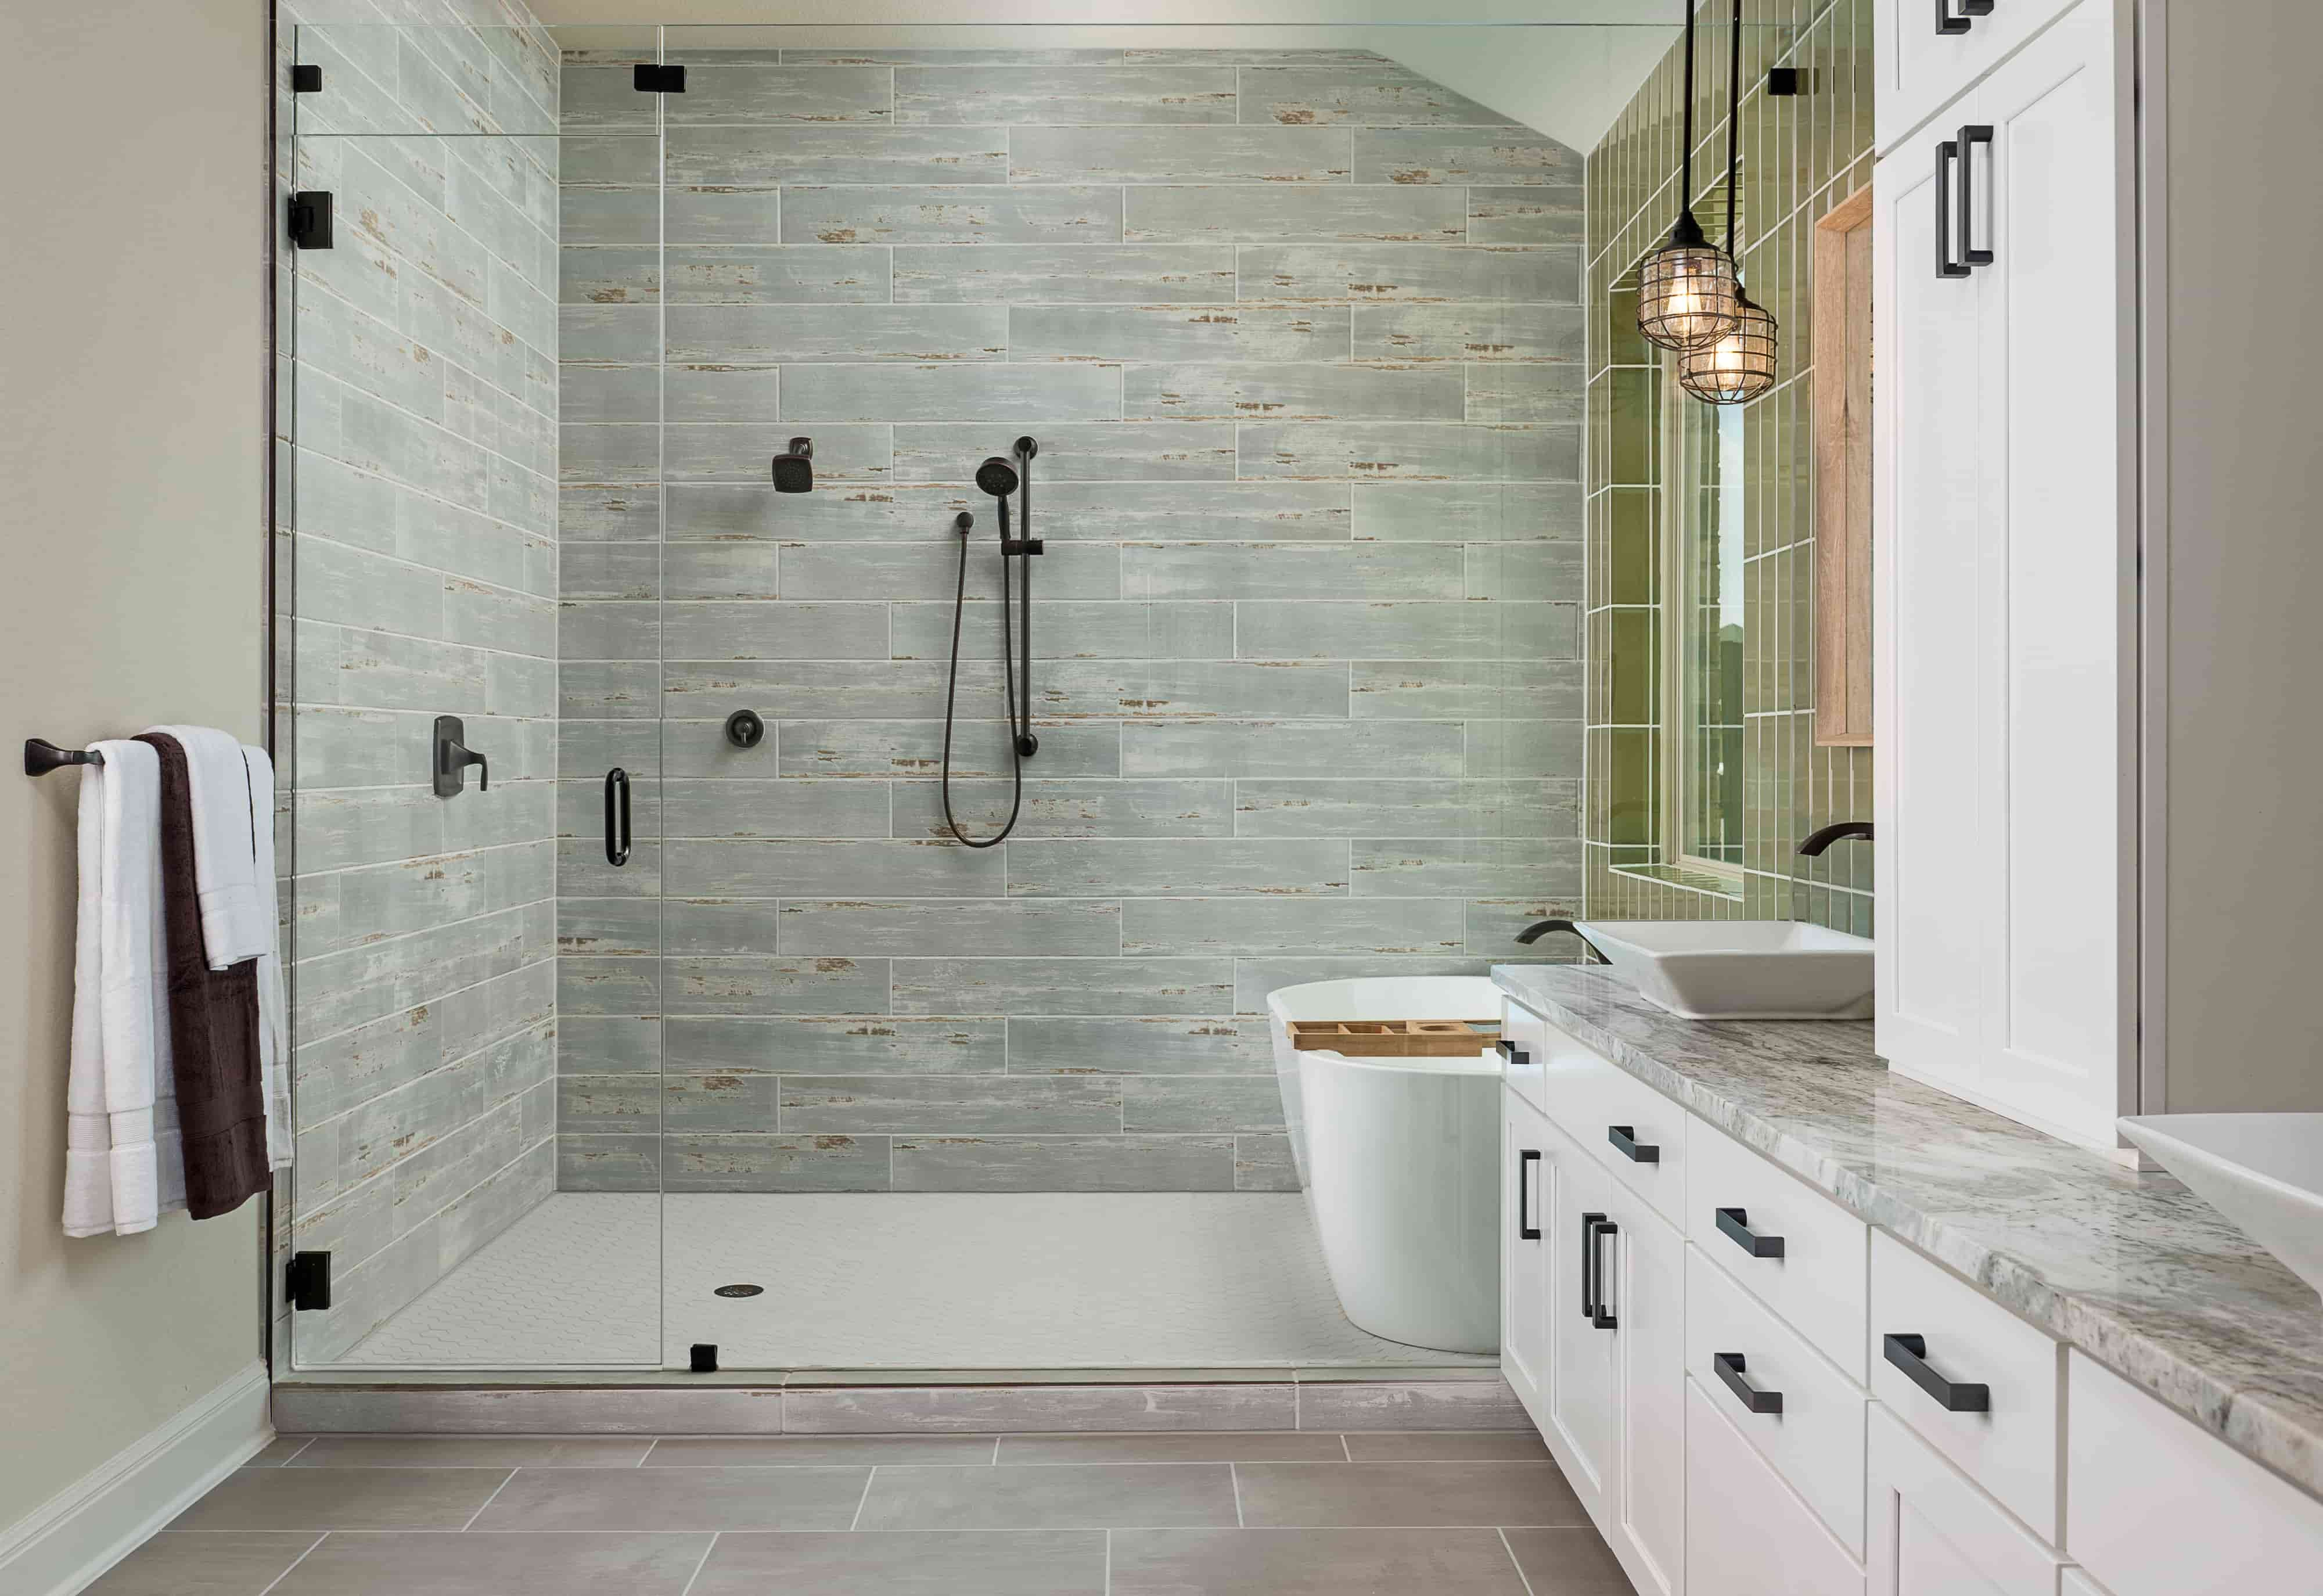 Bathroom featured in the Kerrville By Ashton Woods in San Antonio, TX